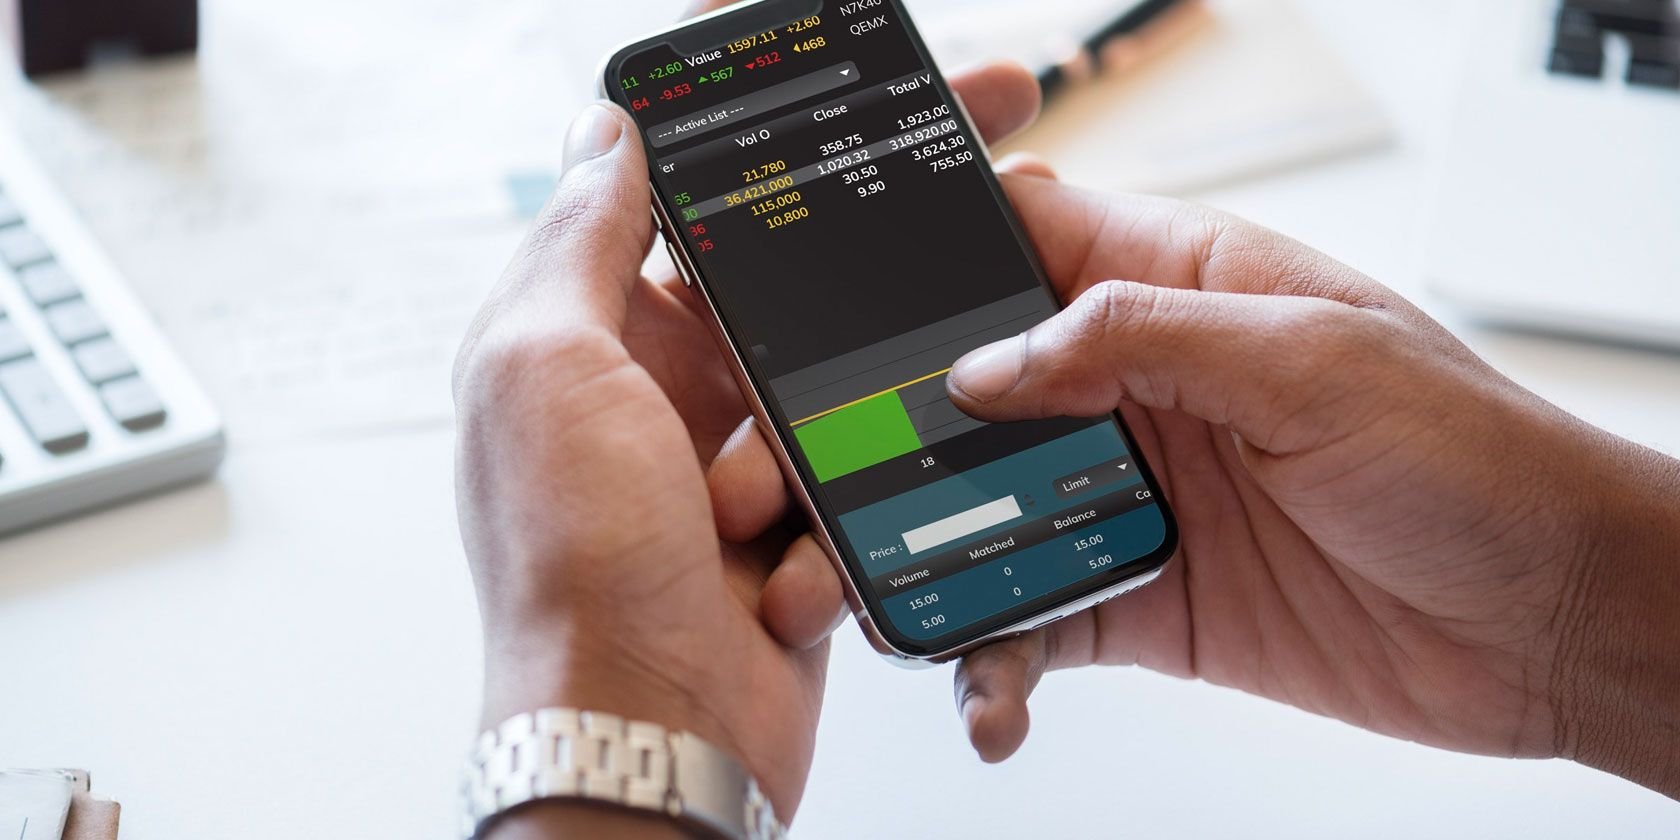 The 5 Best Investment Apps for Absolute Beginners